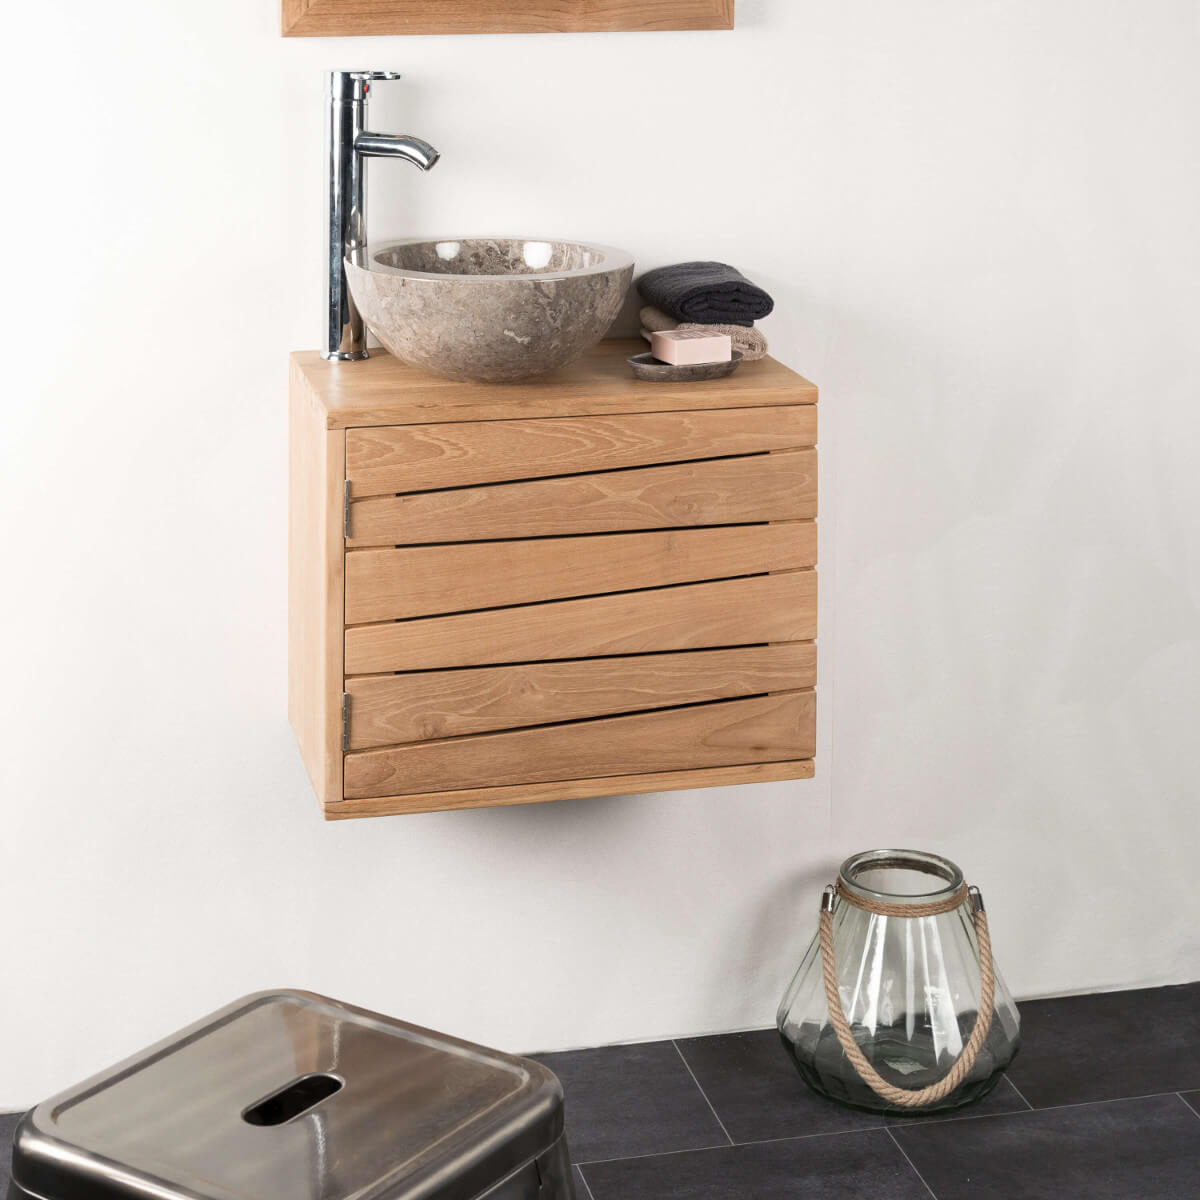 Meuble sous vasque simple vasque suspendu en bois teck for Salle de bain allia